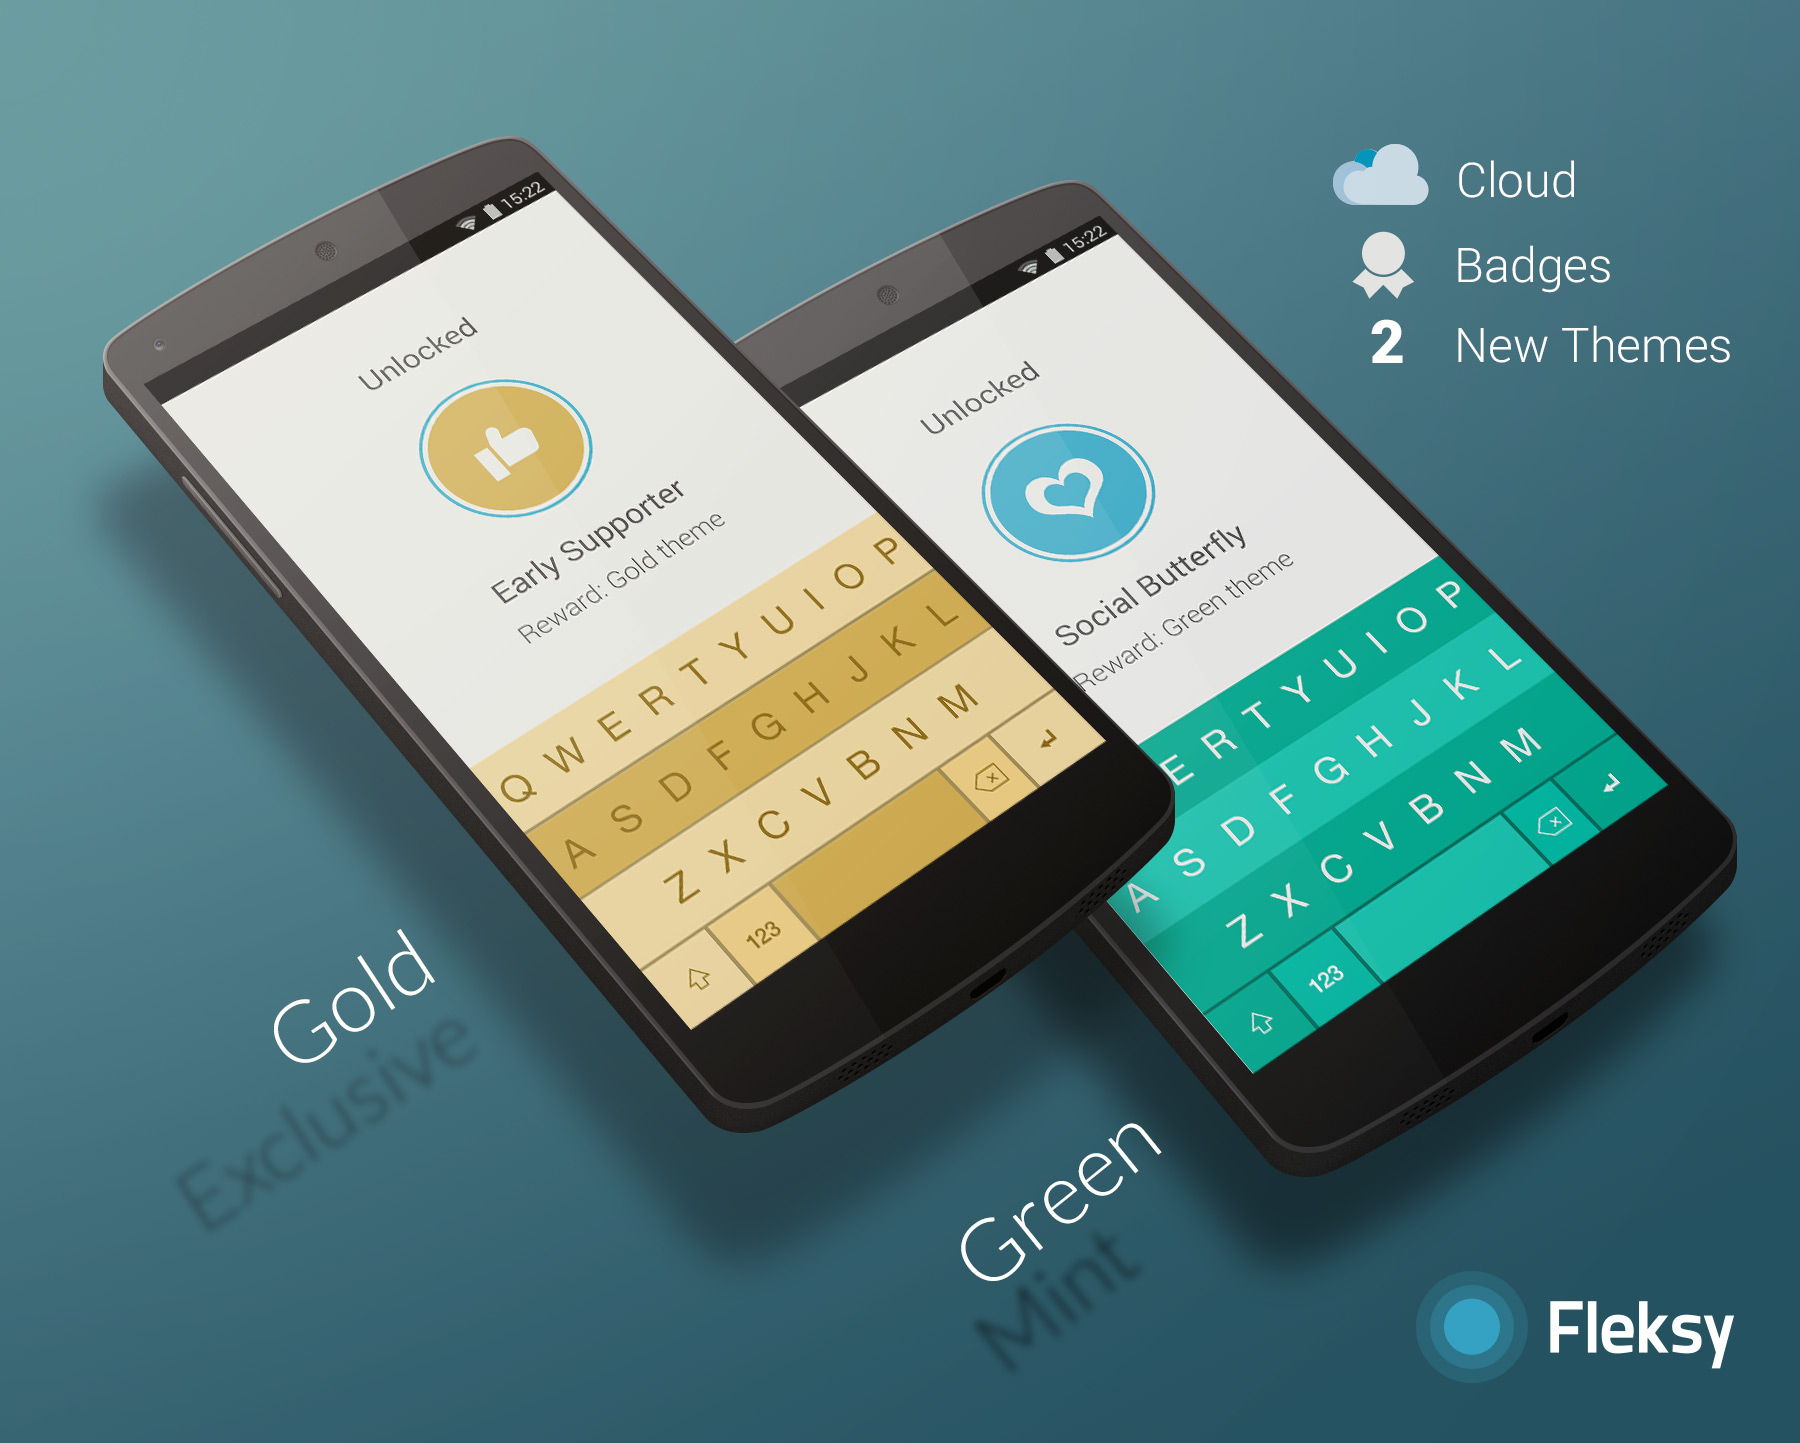 Fleksy Keyboard Goes 2 0 On Android, Bringing Badges That Extend